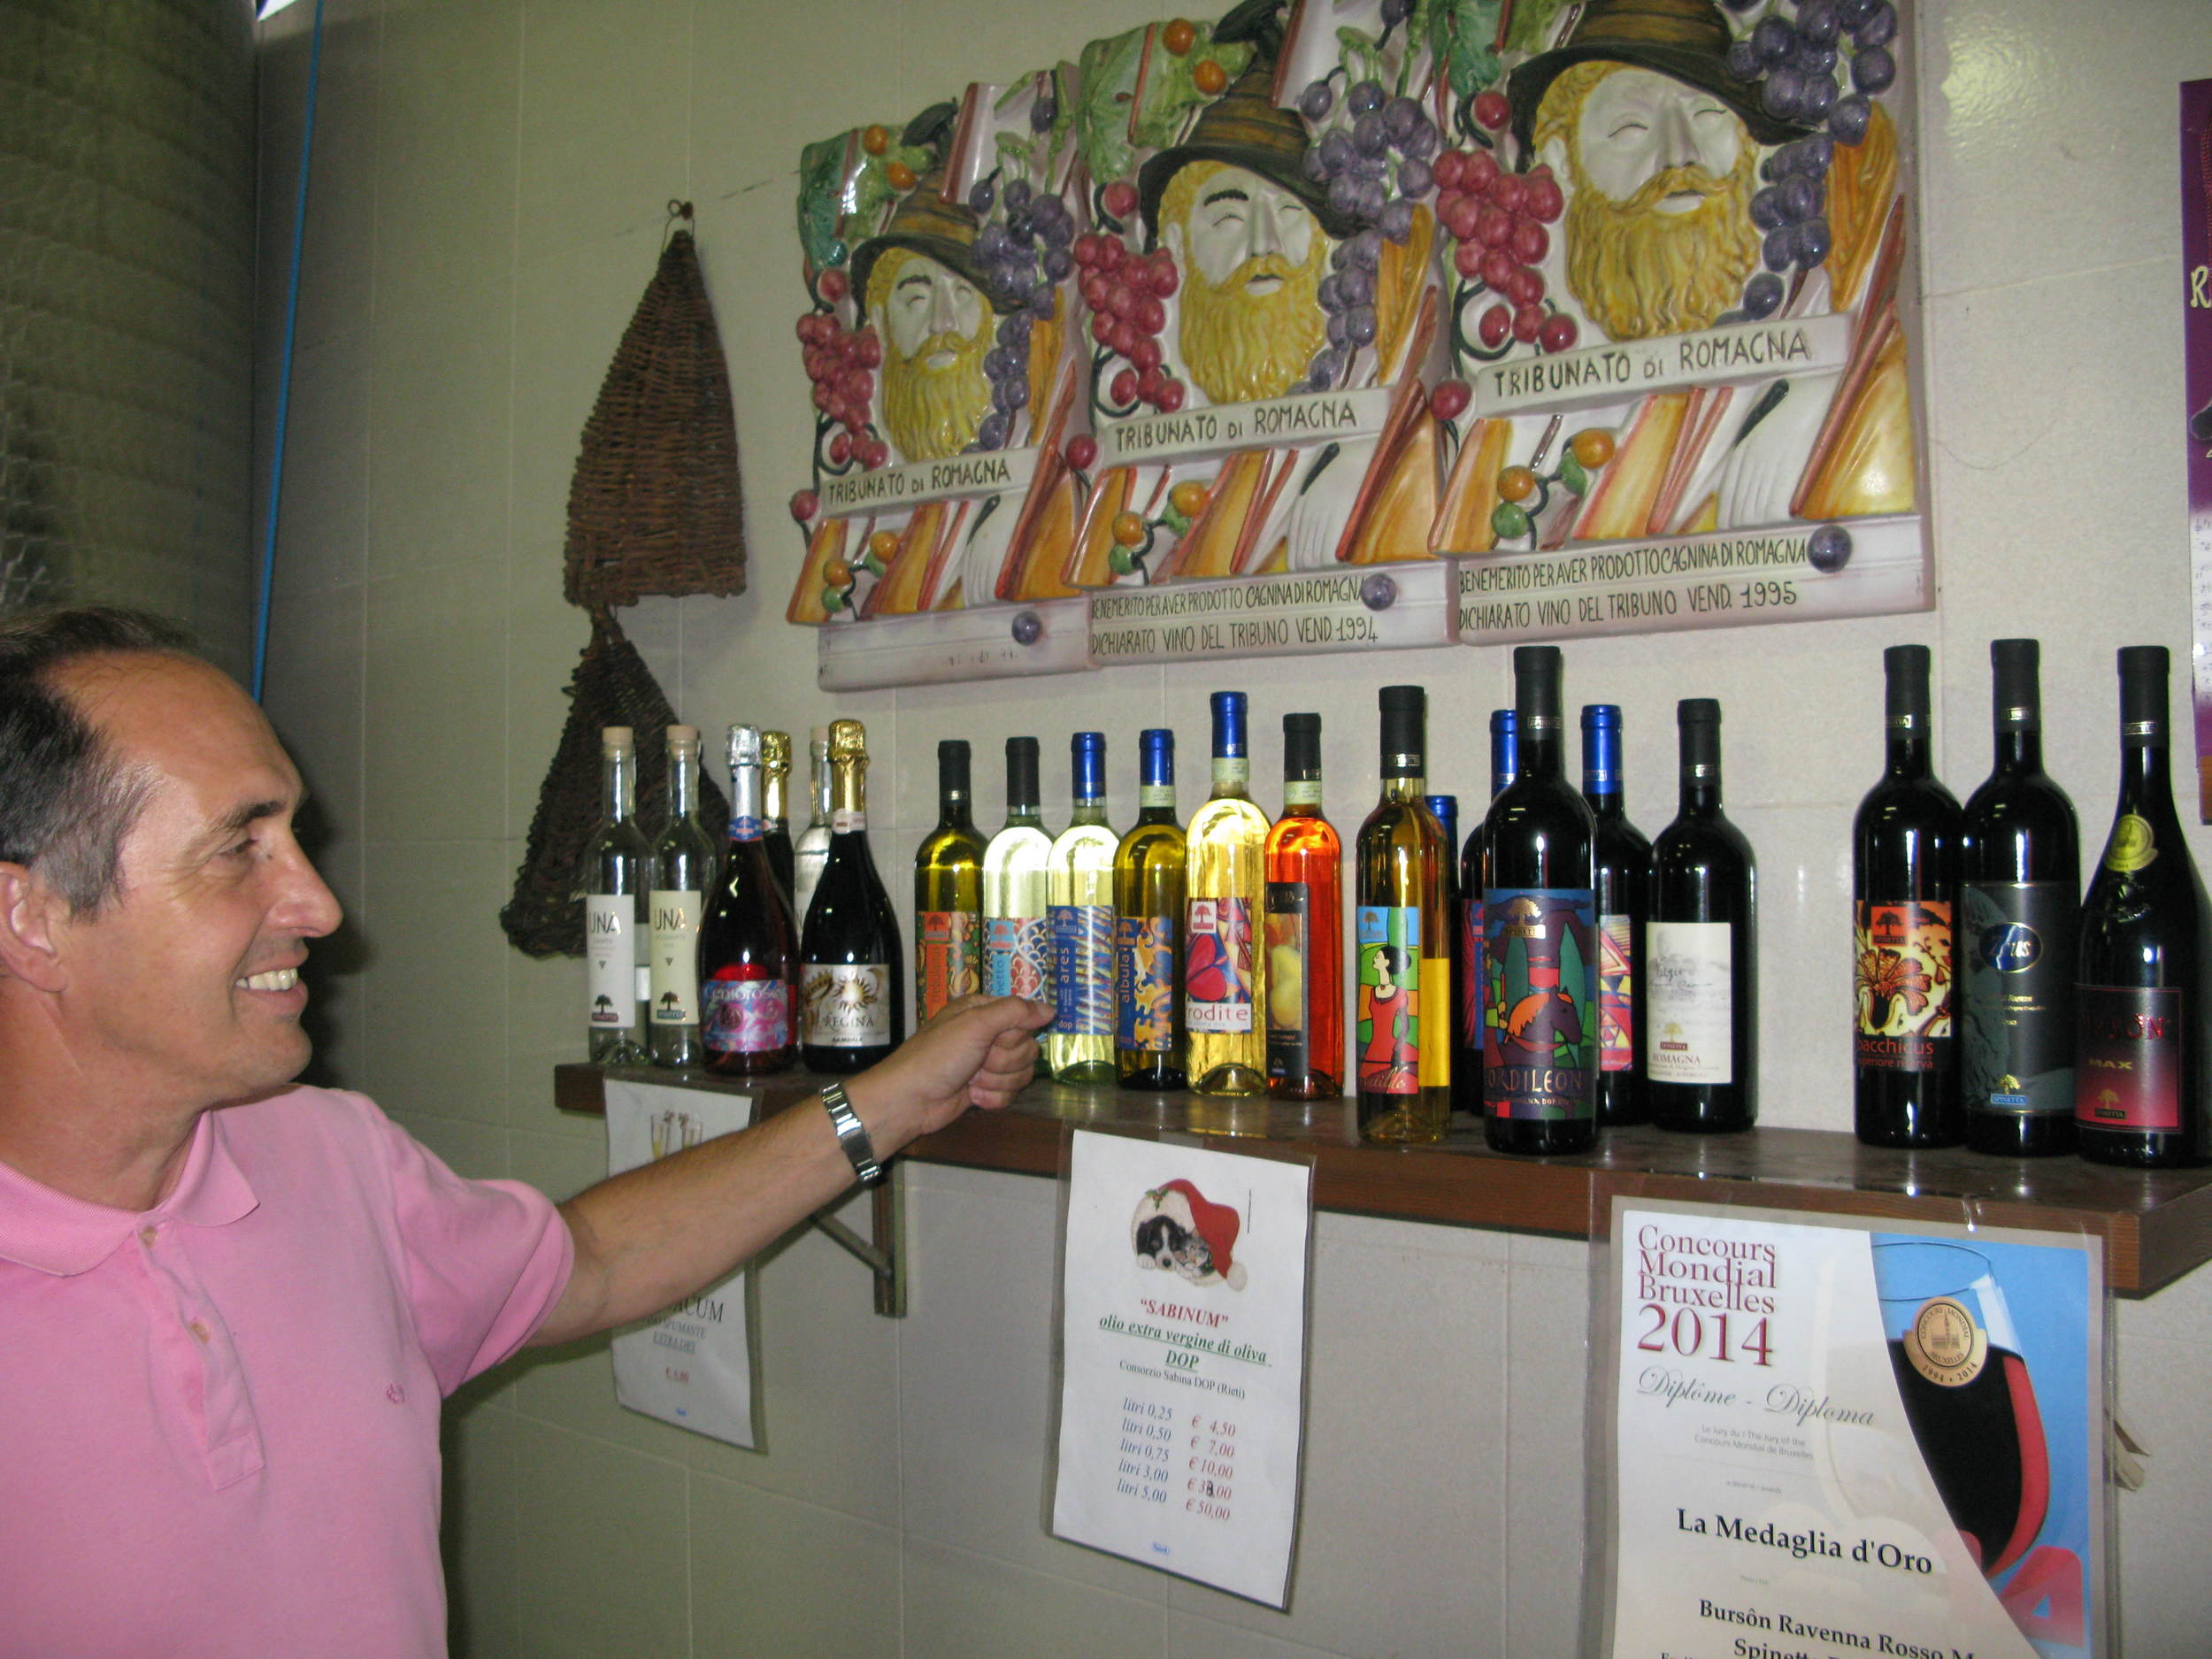 Luciano likes colourful labels